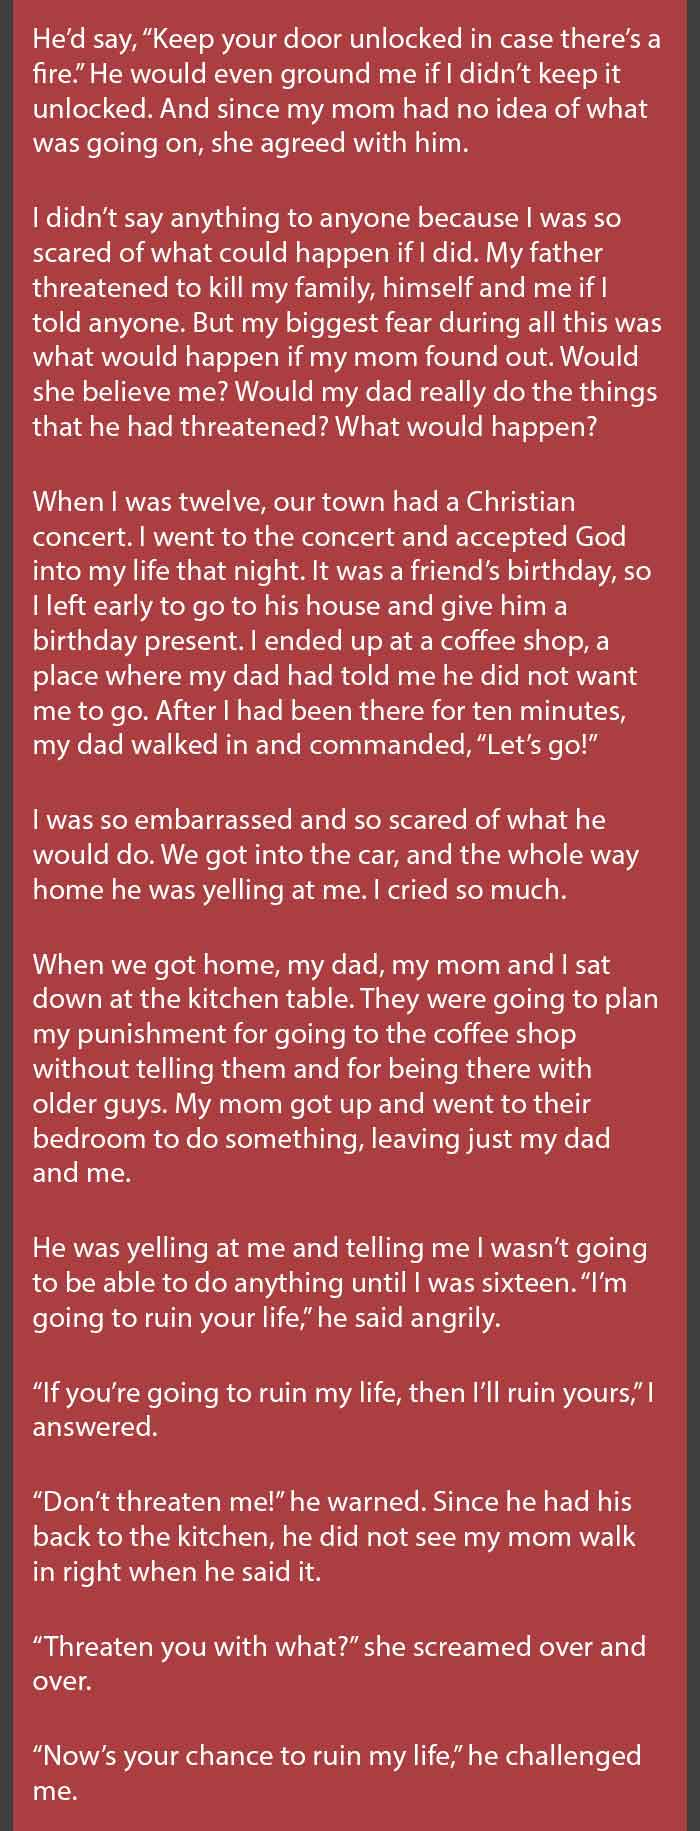 Here's What One Mom Did To Get Safety And Justice For Her Kids Who Were Being Abused ... By Their Dad